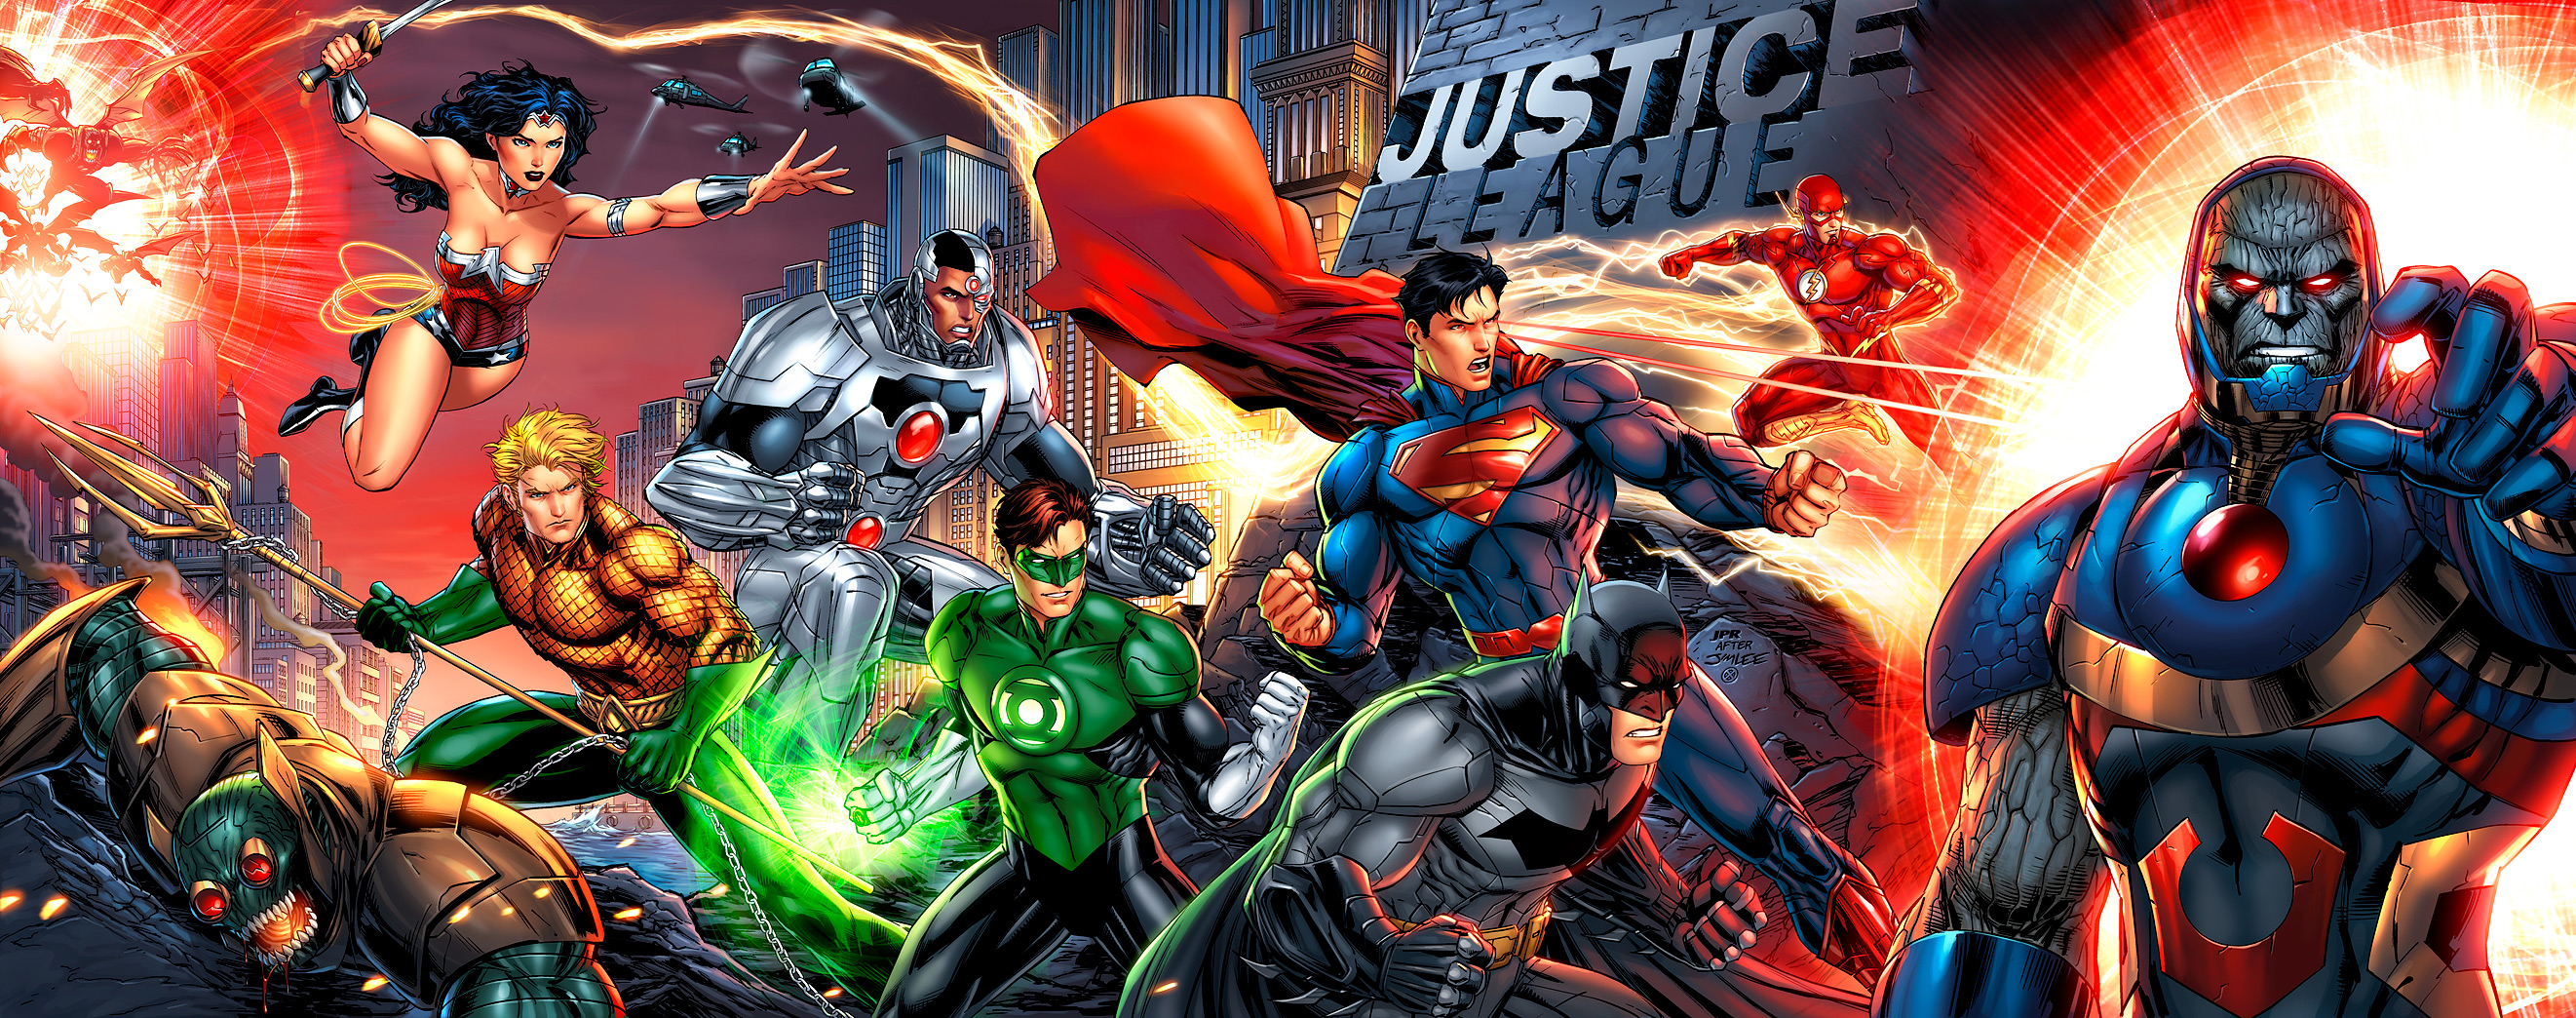 Justice League by JPRart on deviantART